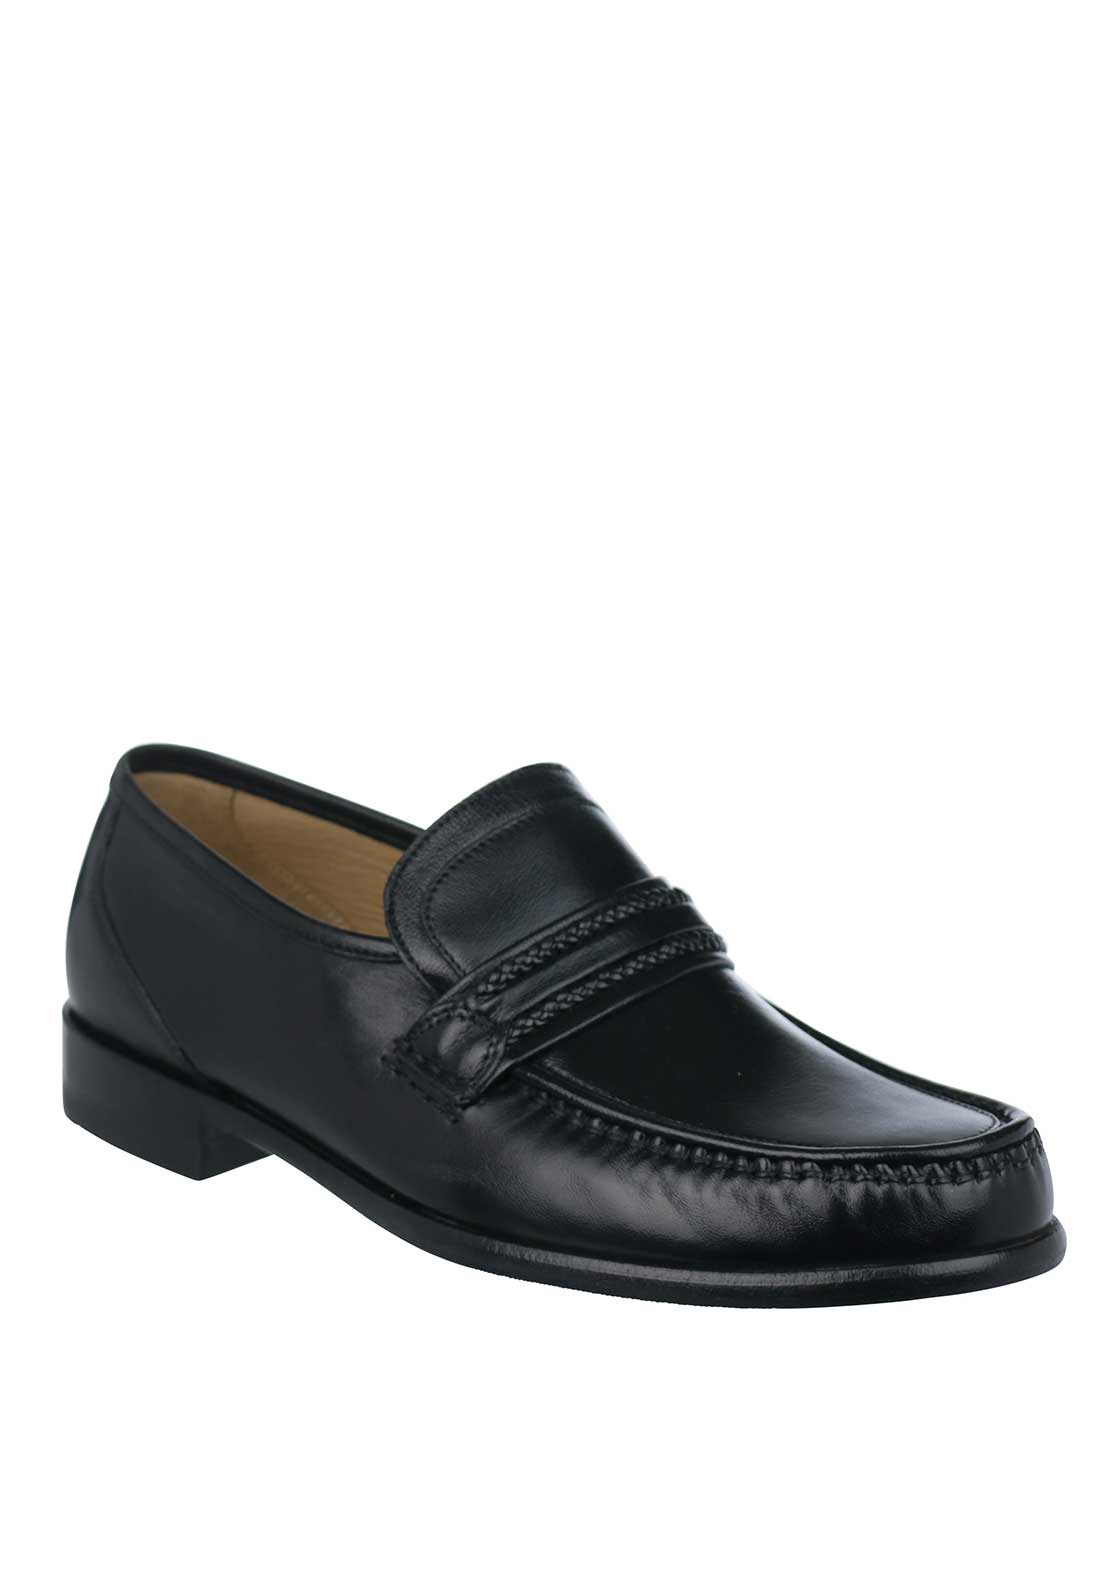 Loake Rome Leather Slip On Formal Shoe, Black